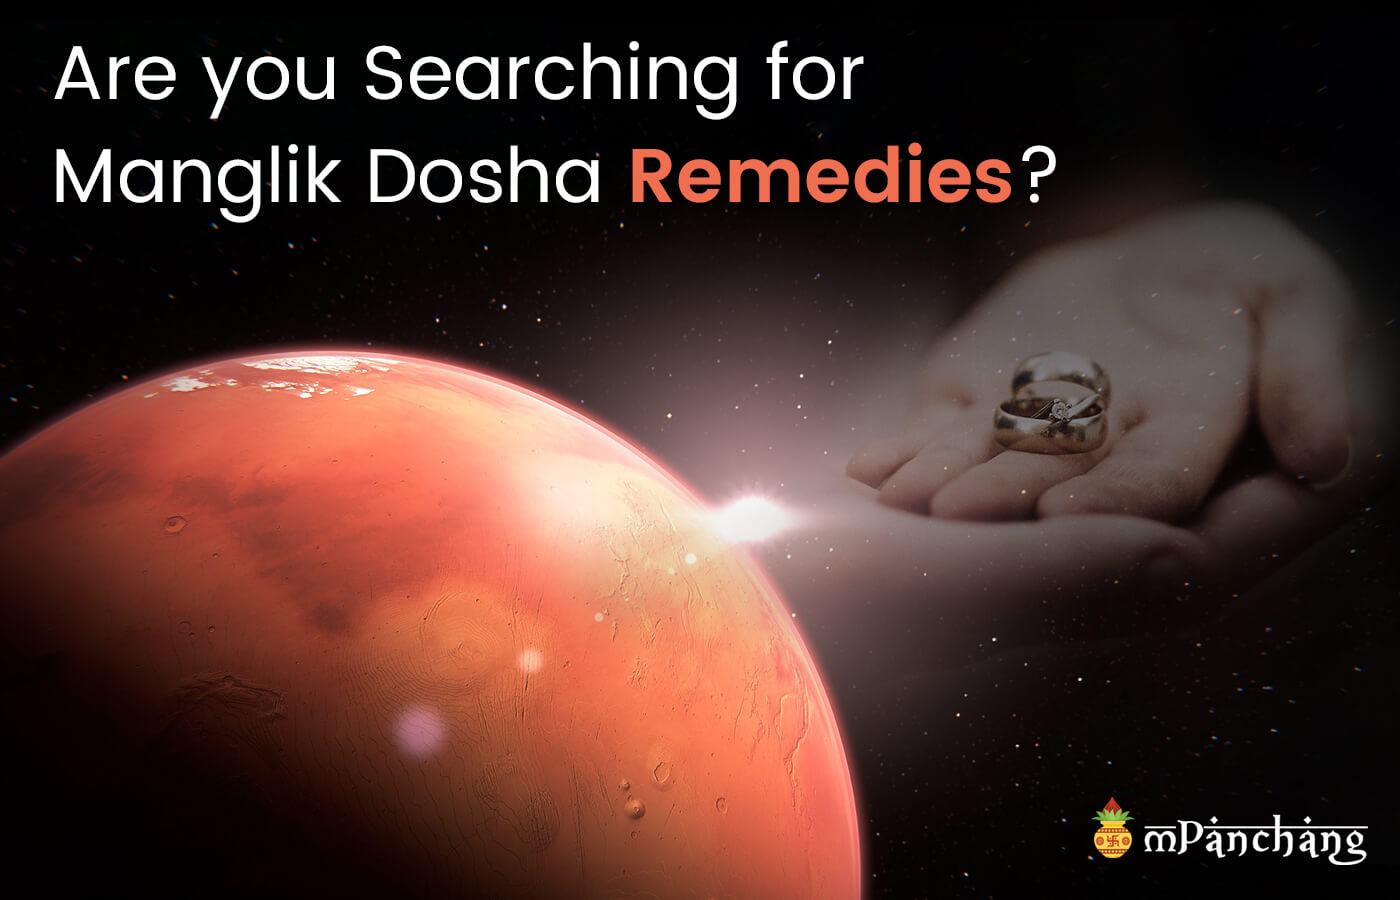 Are you Searching for Manglik Dosha Remedies